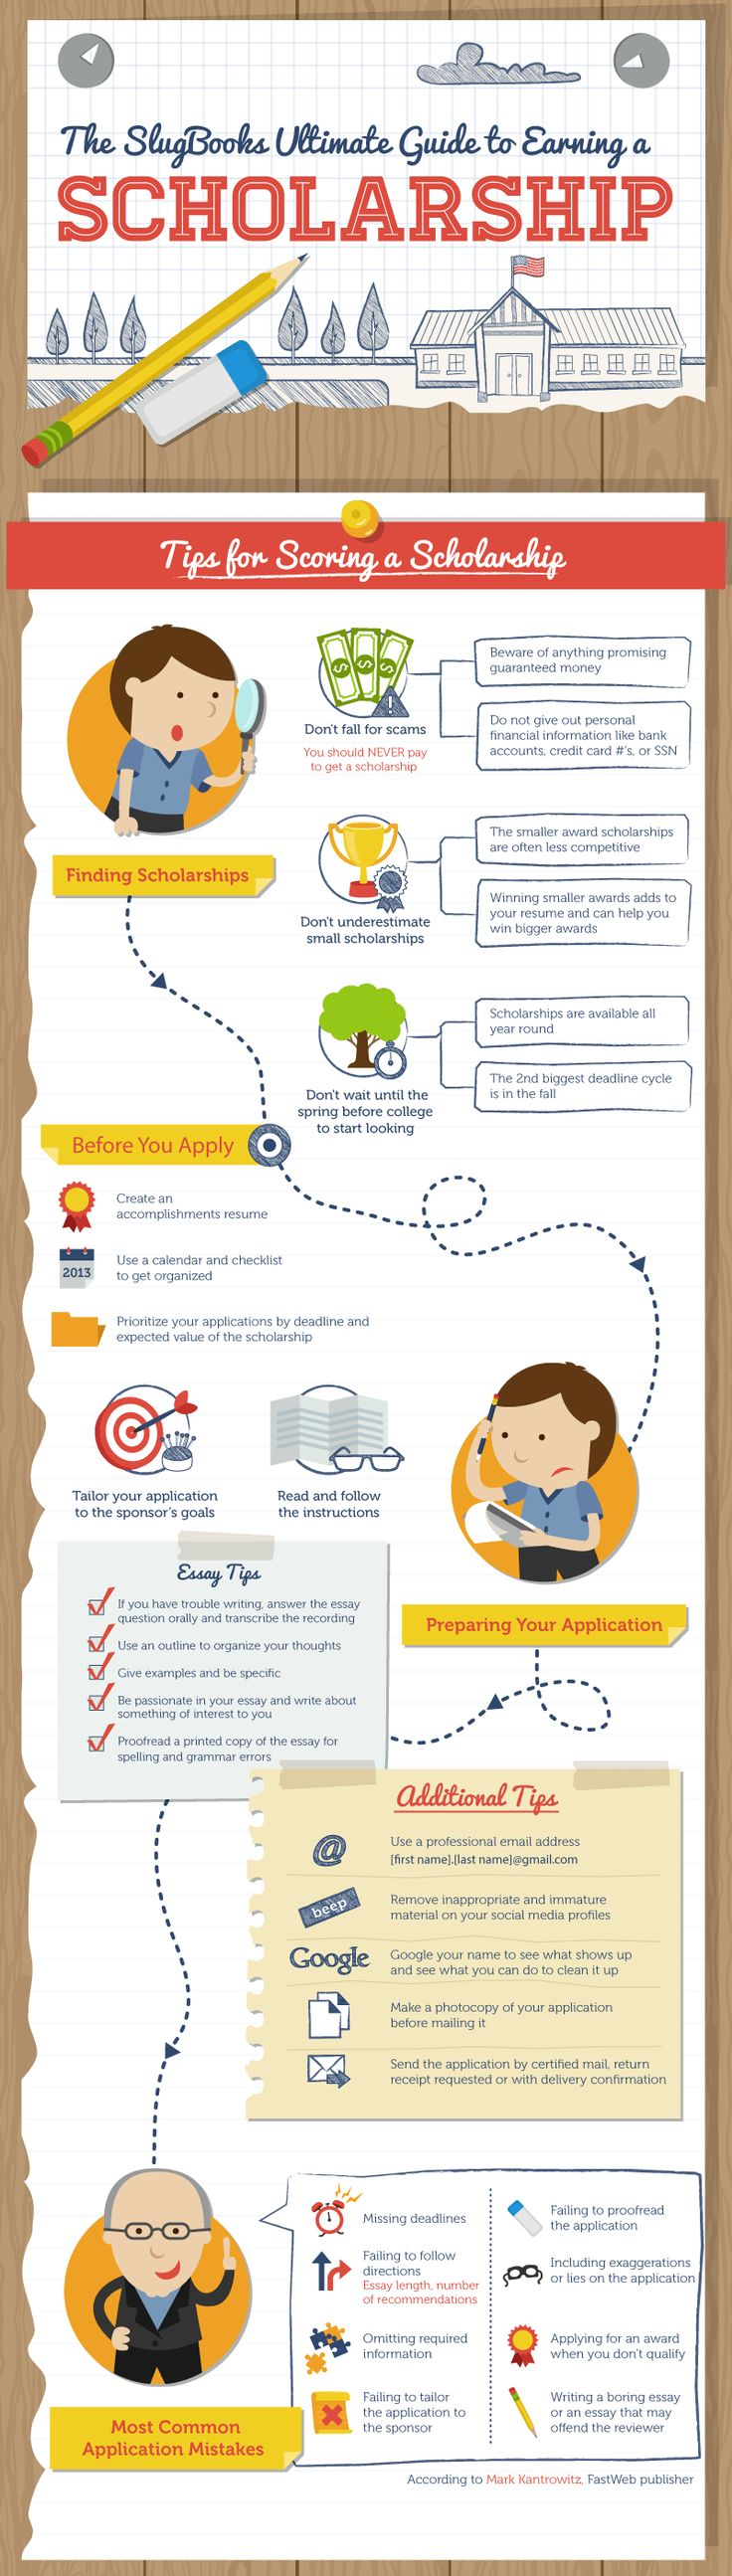 How To Write A Resume For A Scholarship 199 Best Scholarship Info Images On Pinterest  College Club School .